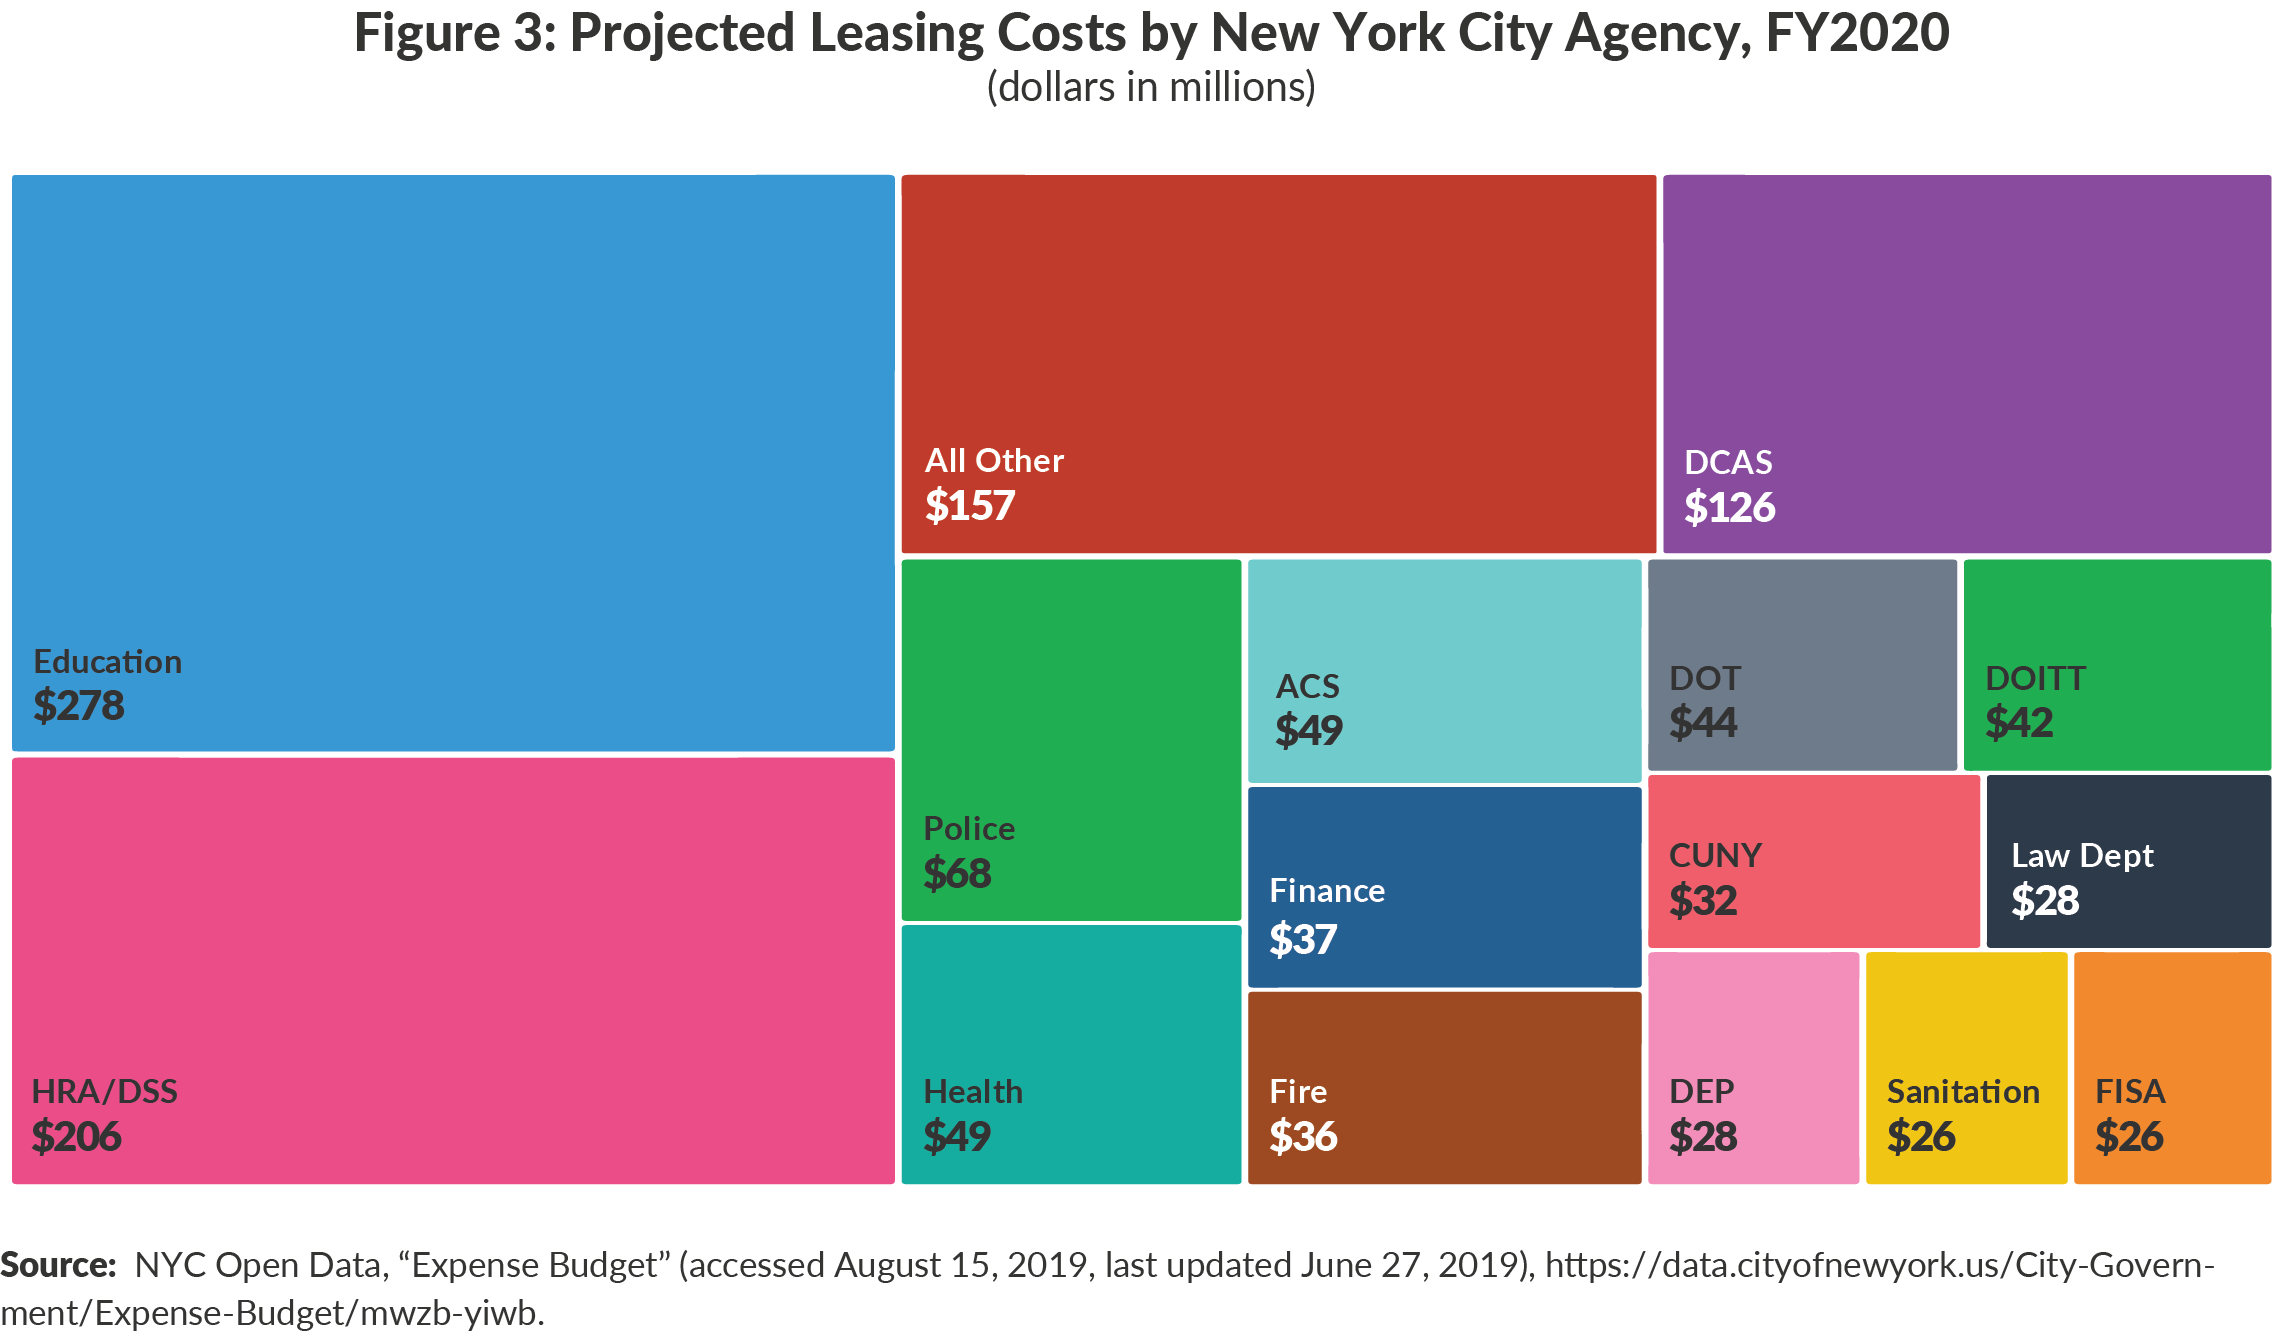 Figure 3: Projected Leasing Costs by New York City Agency, FY2020